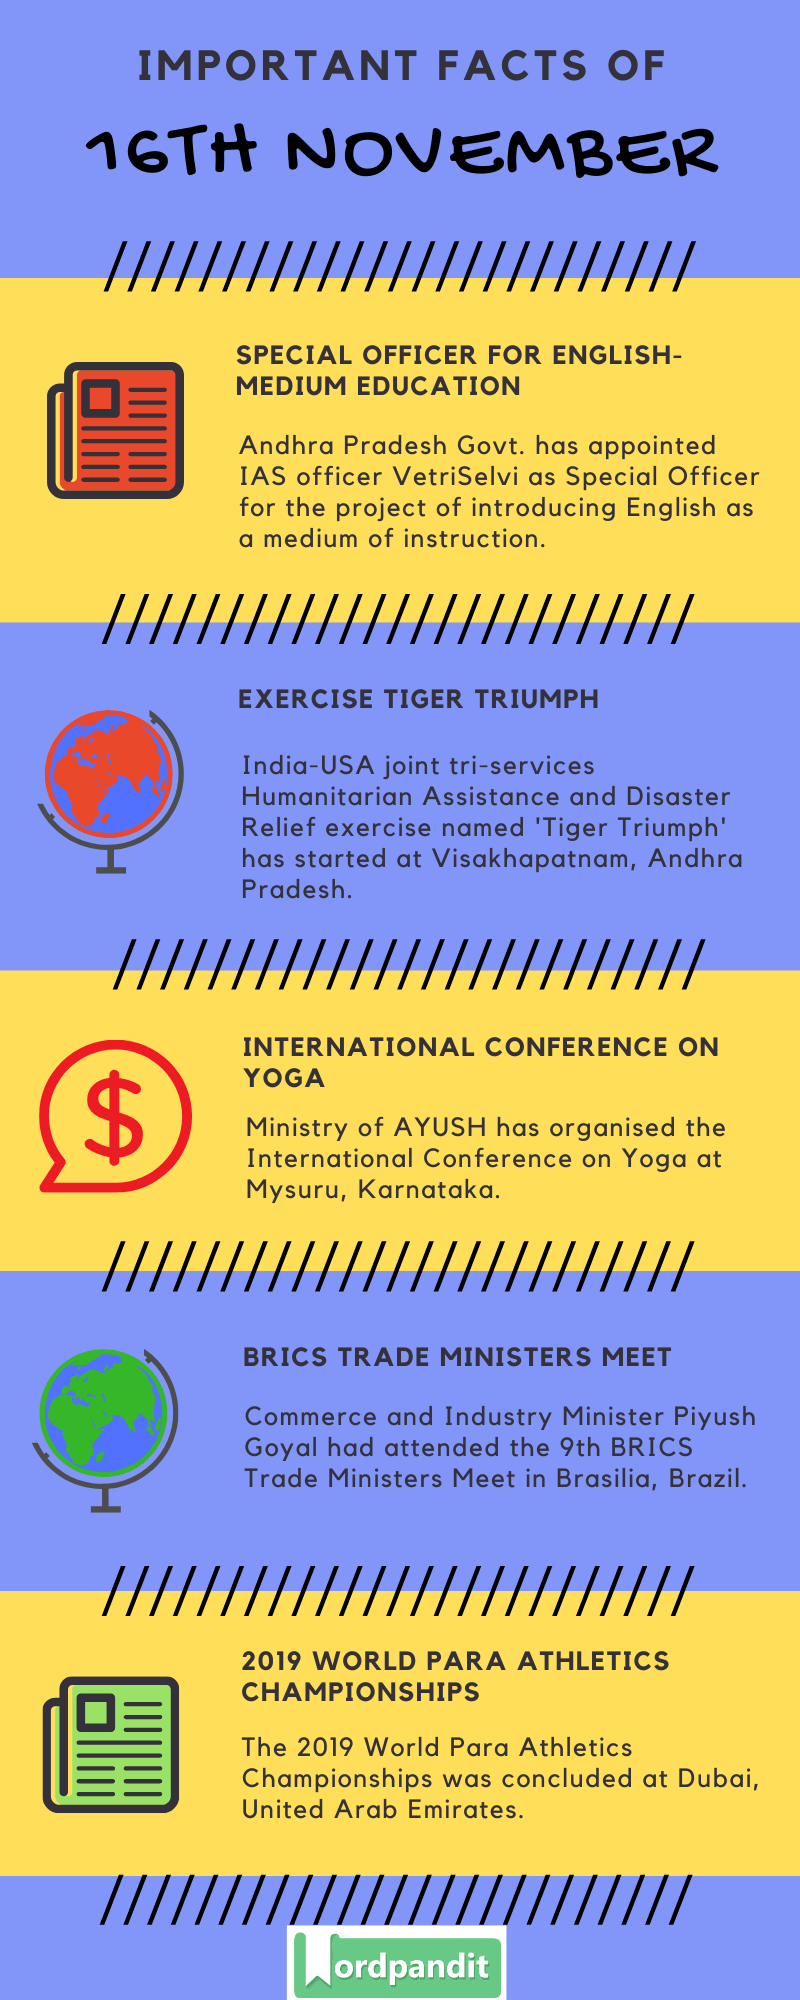 Daily Current Affairs 16 November 2019 Current Affairs Quiz 16 November 2019 Current Affairs Infographic